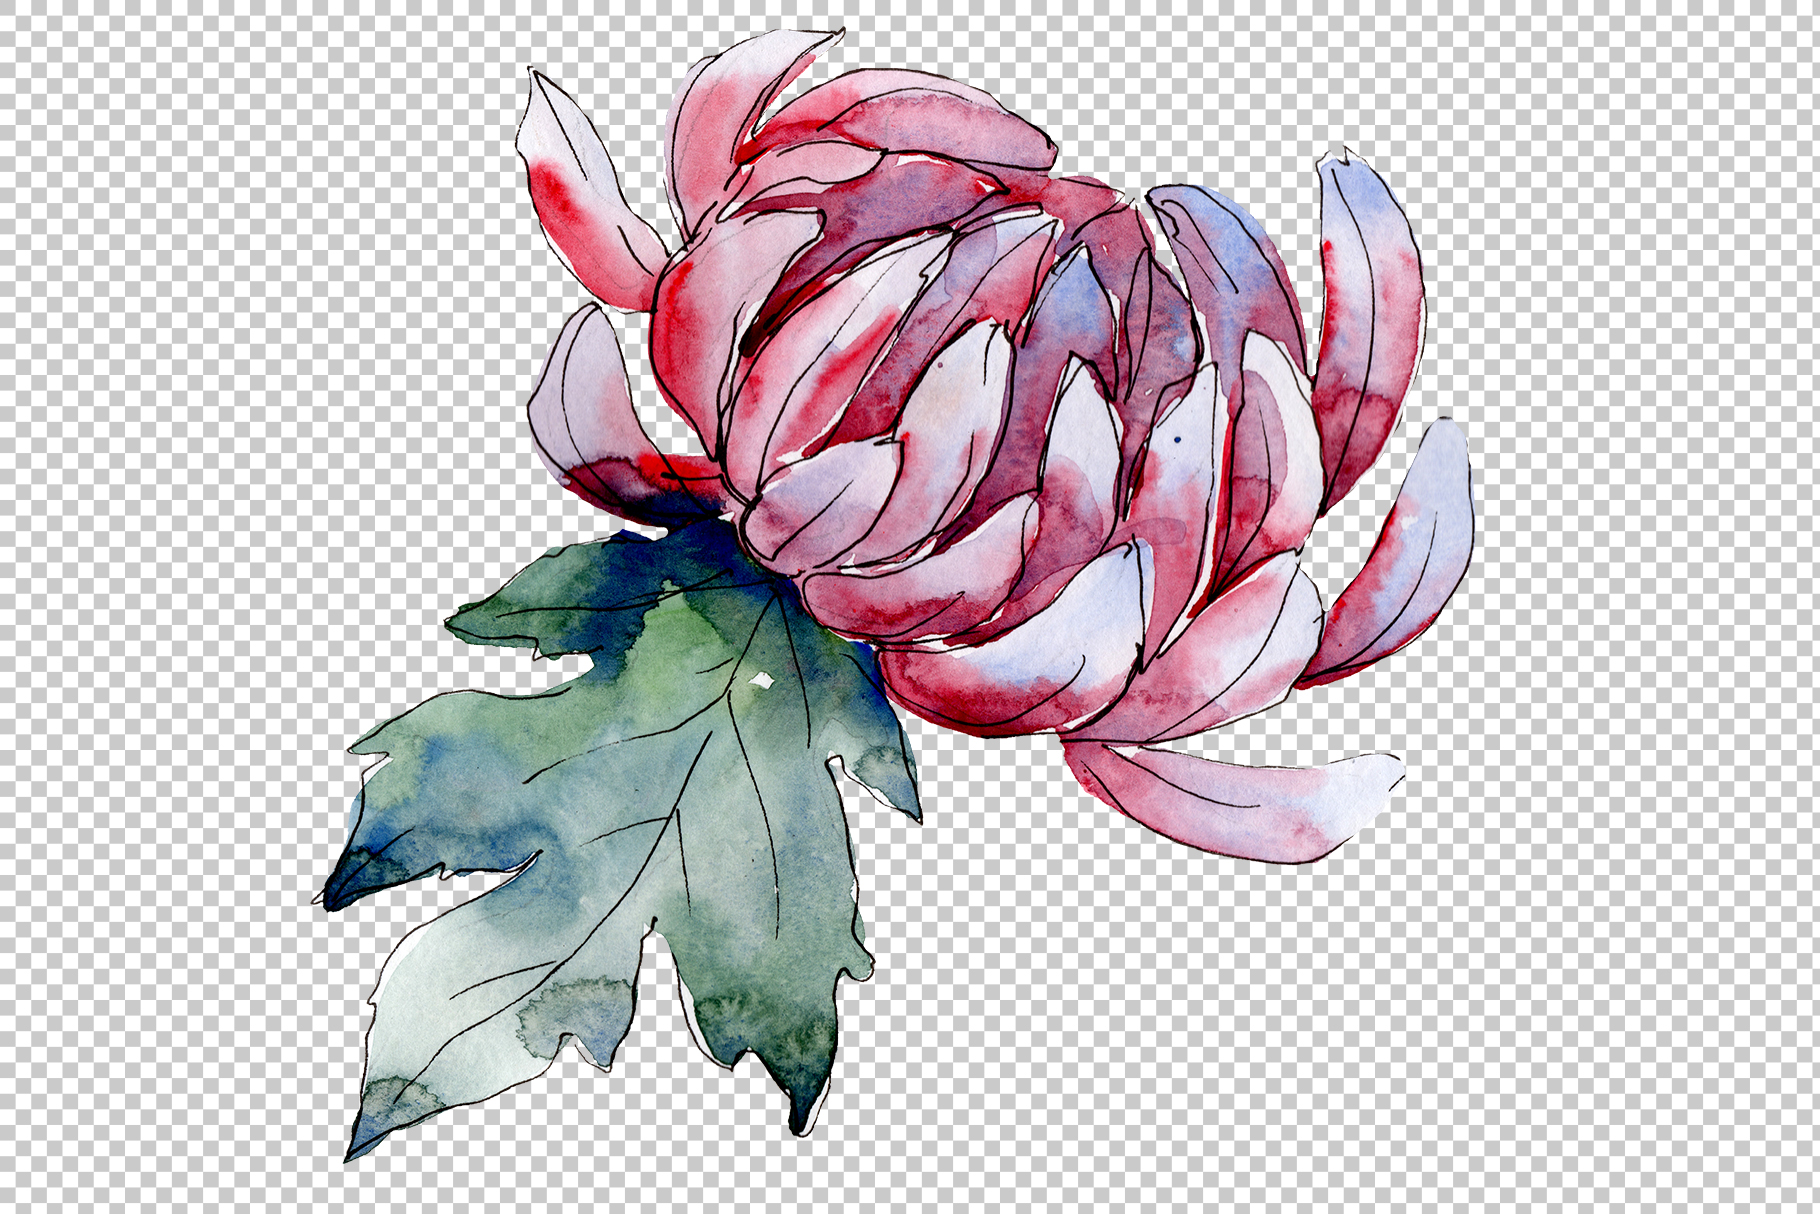 Delicate flower daisy watercolor png example image 5